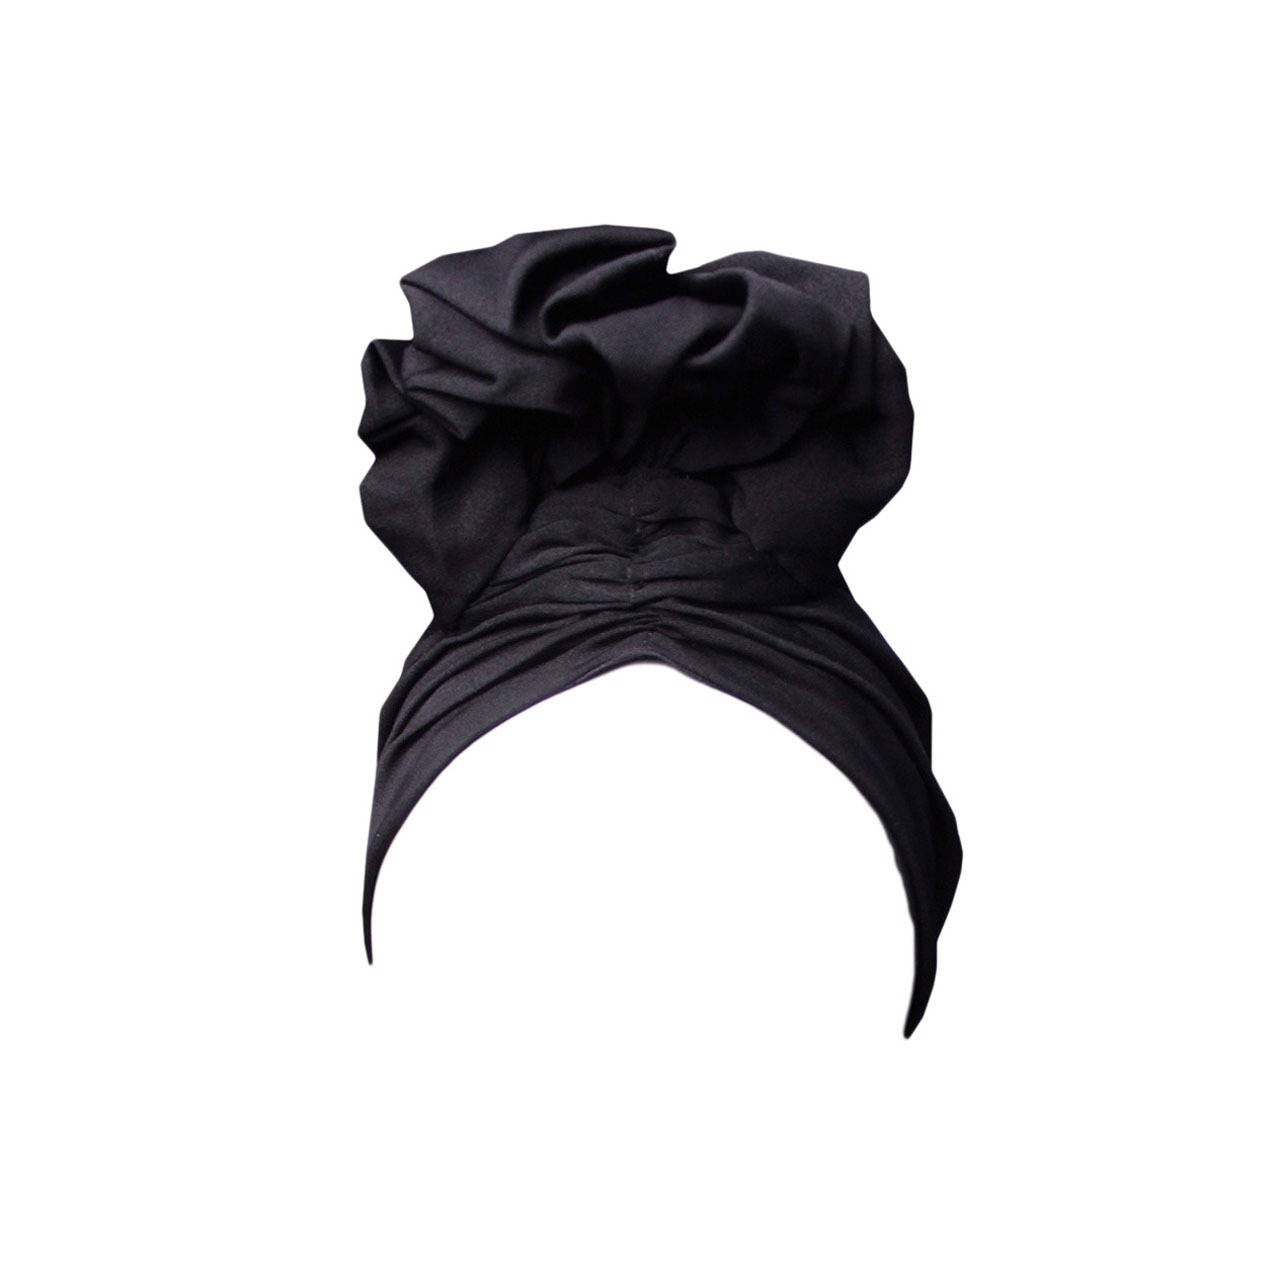 Norma Kamali 1970s Exaggerated Turban 1